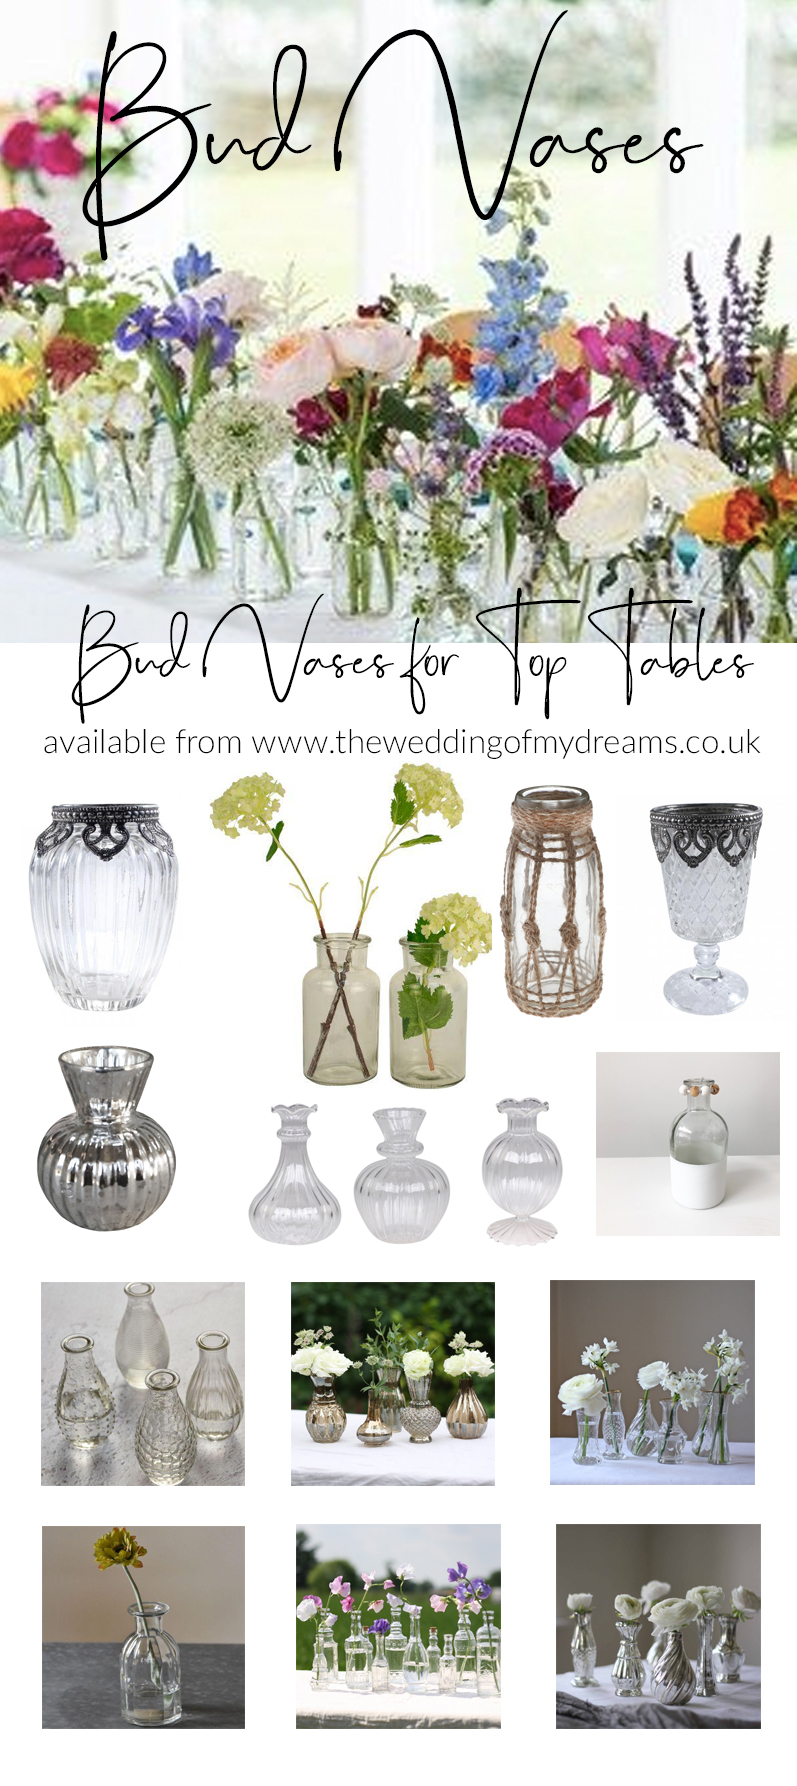 Glass bud vases for wedding top tables from THE WEDDING OF MY DREAMS wedding styling